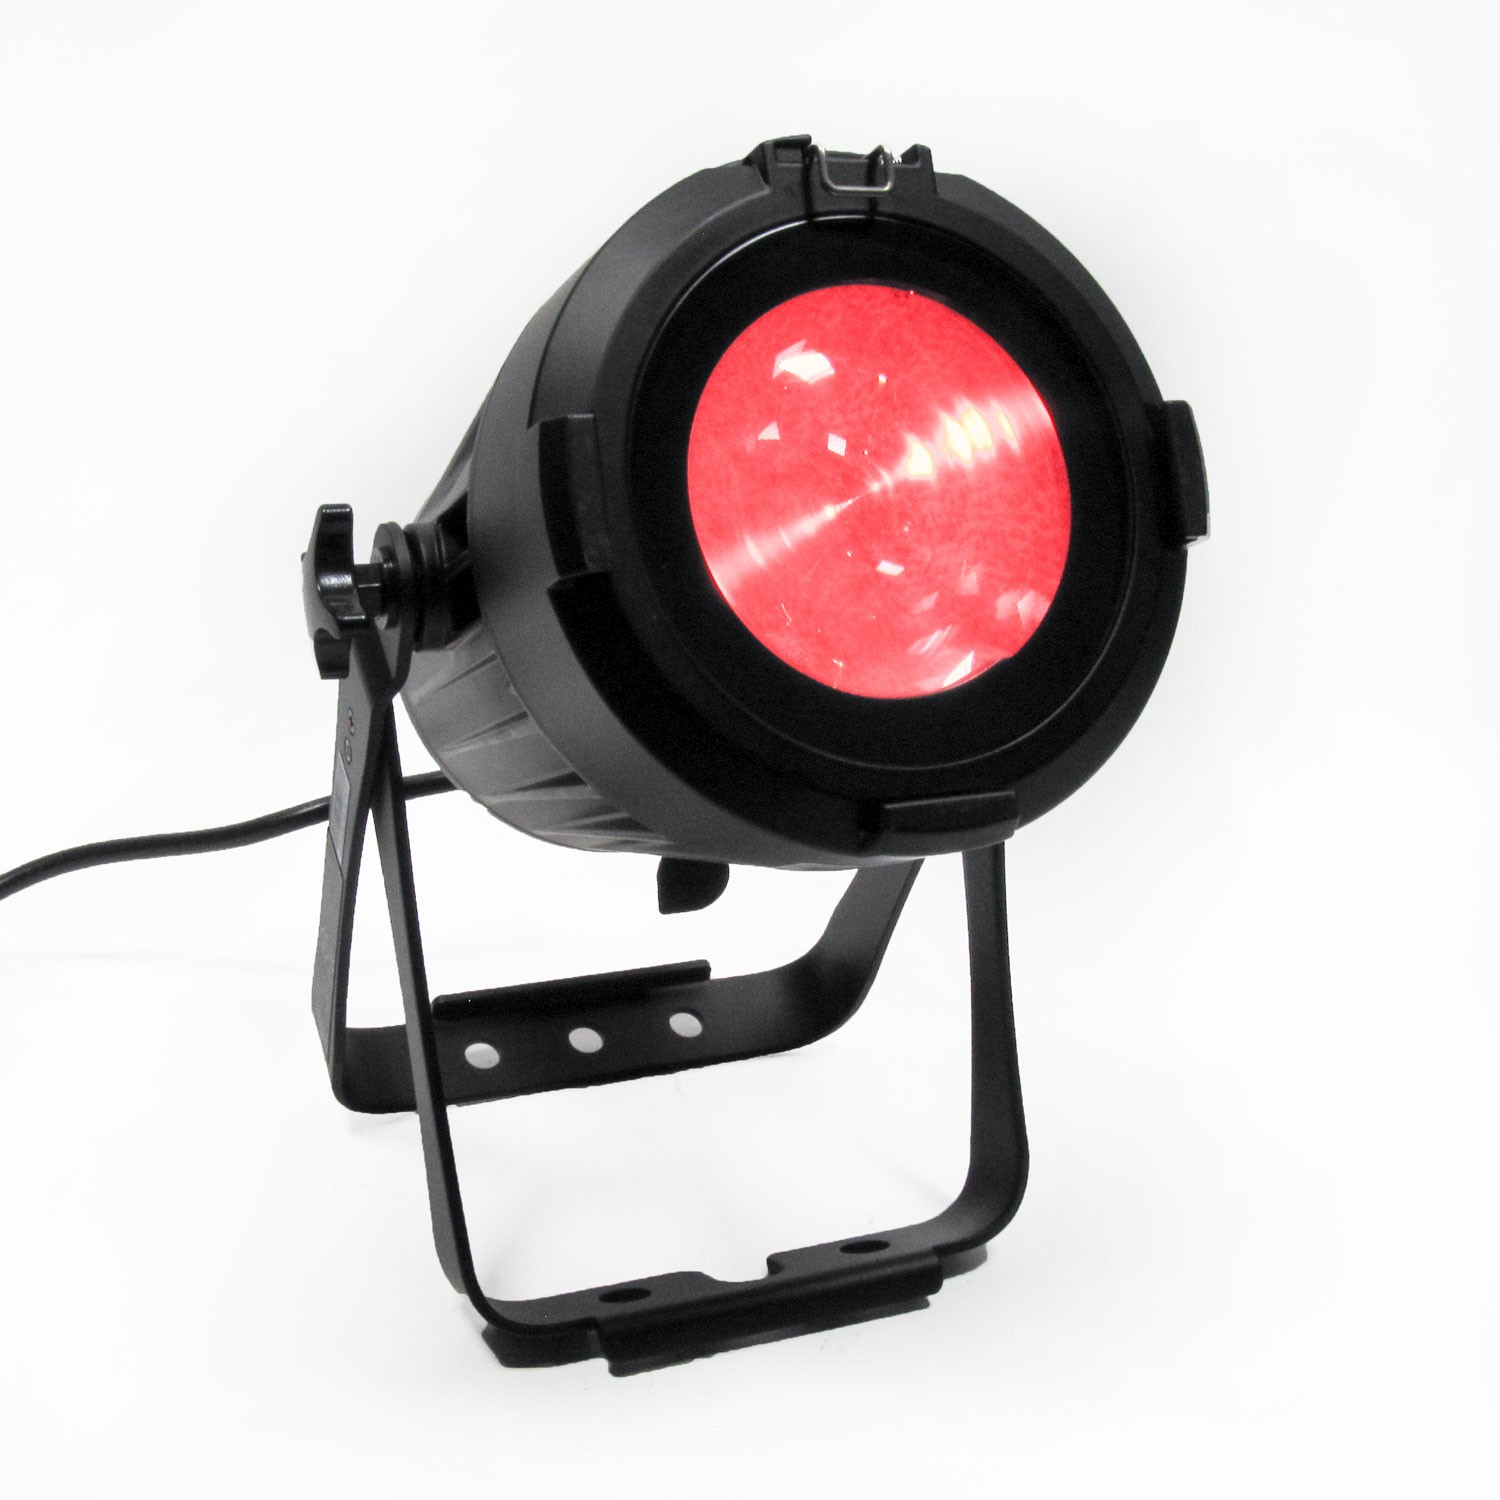 Chauvet Professional COLORado 1-Solo - IP65 RGBW